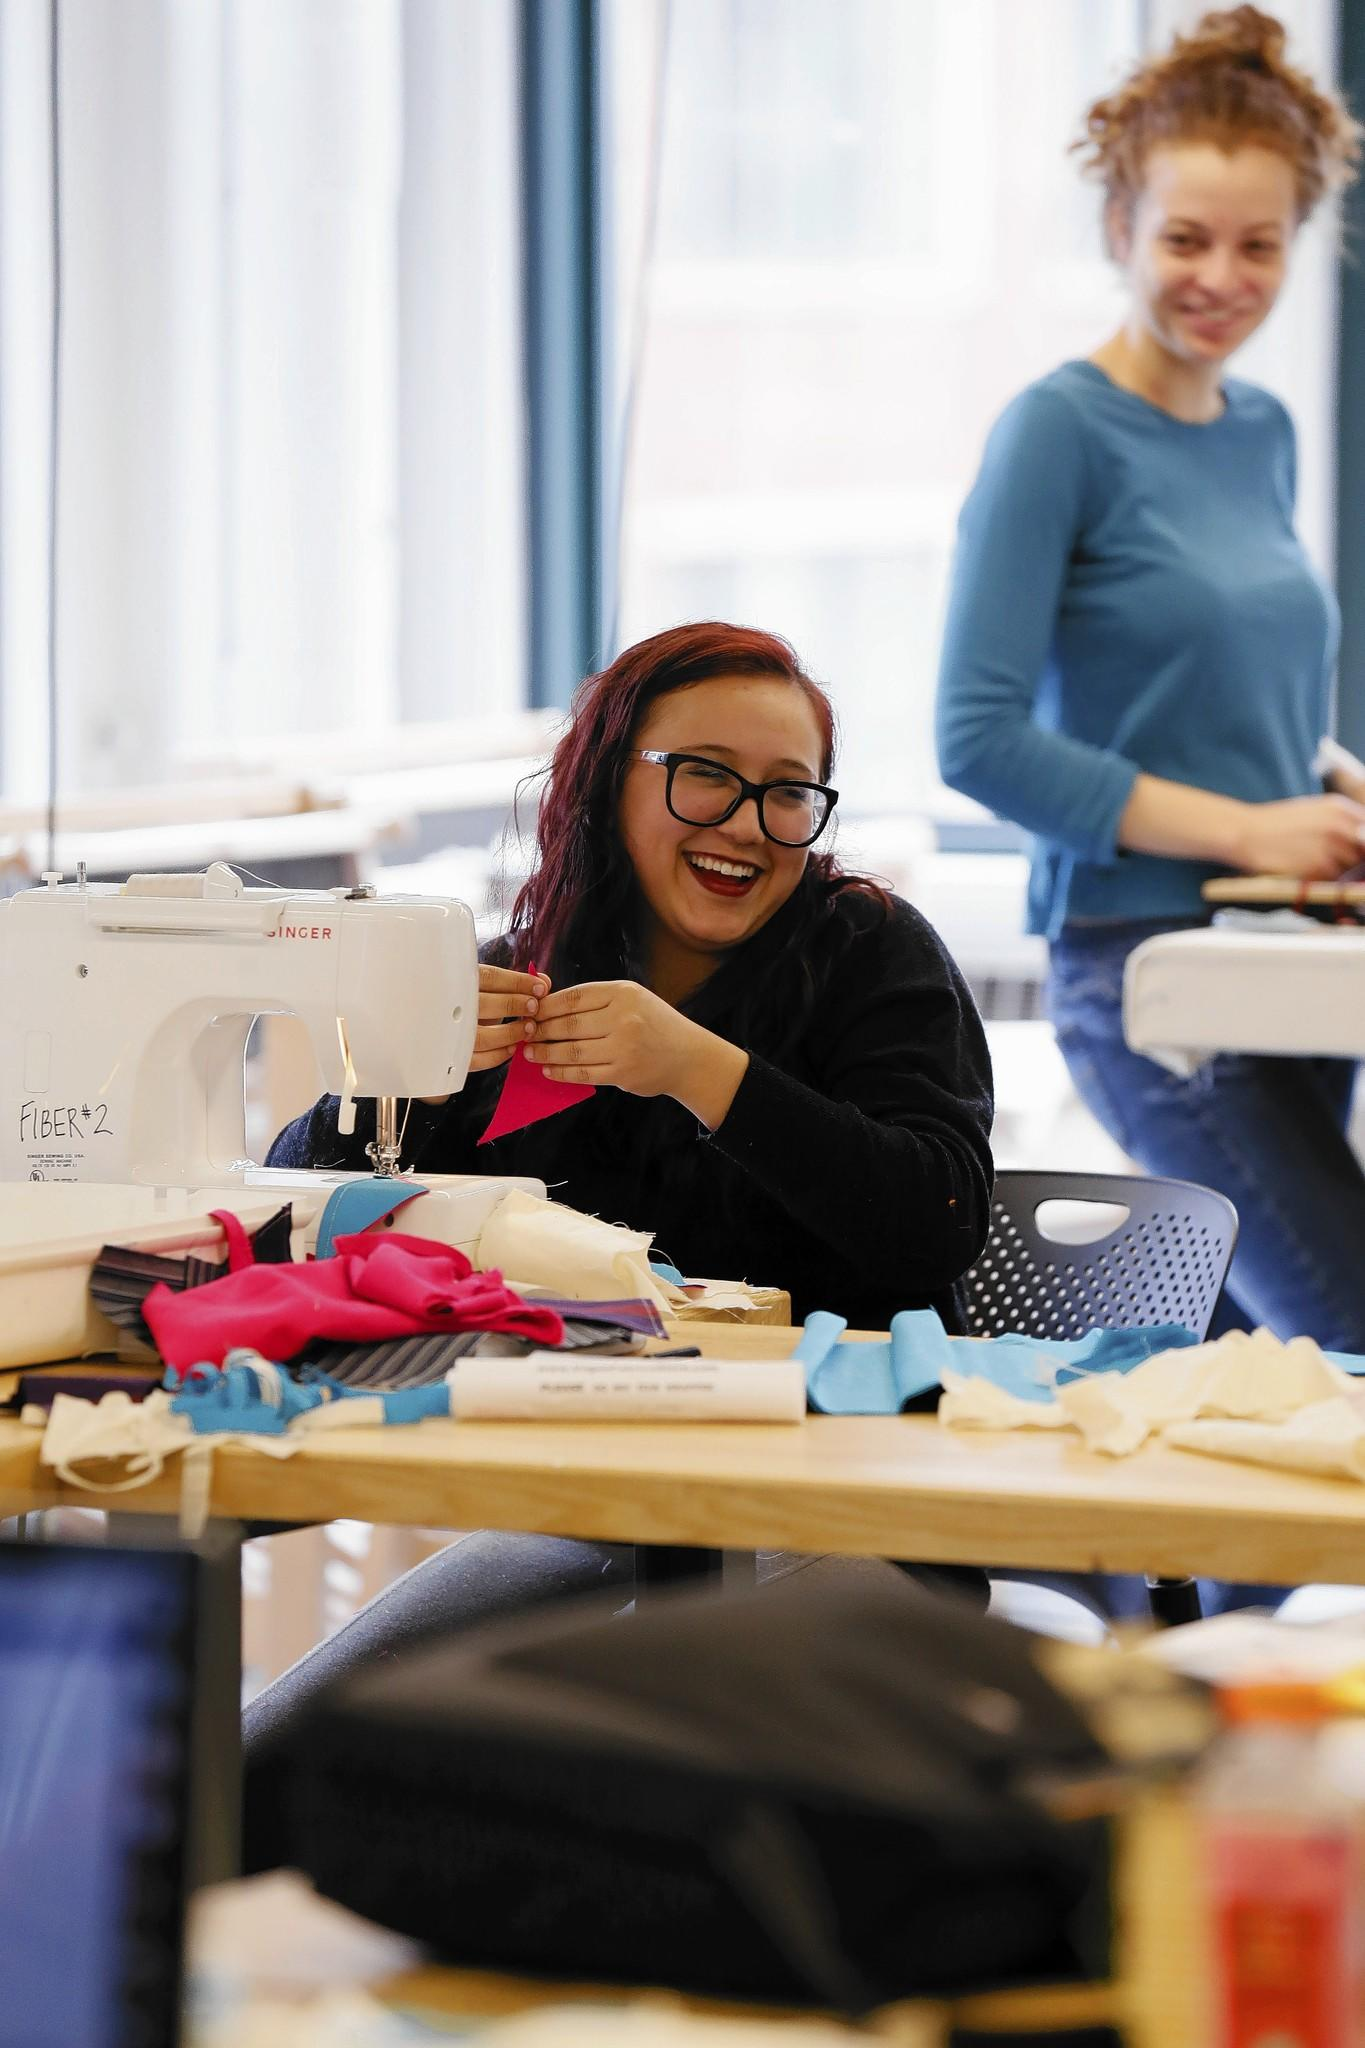 Adriana Alamillo, 20, of Mexico City, jokes with classmates last month in her Introduction to Fibers class at the School of the Art Institute of Chicago, which has 11 percent international students.